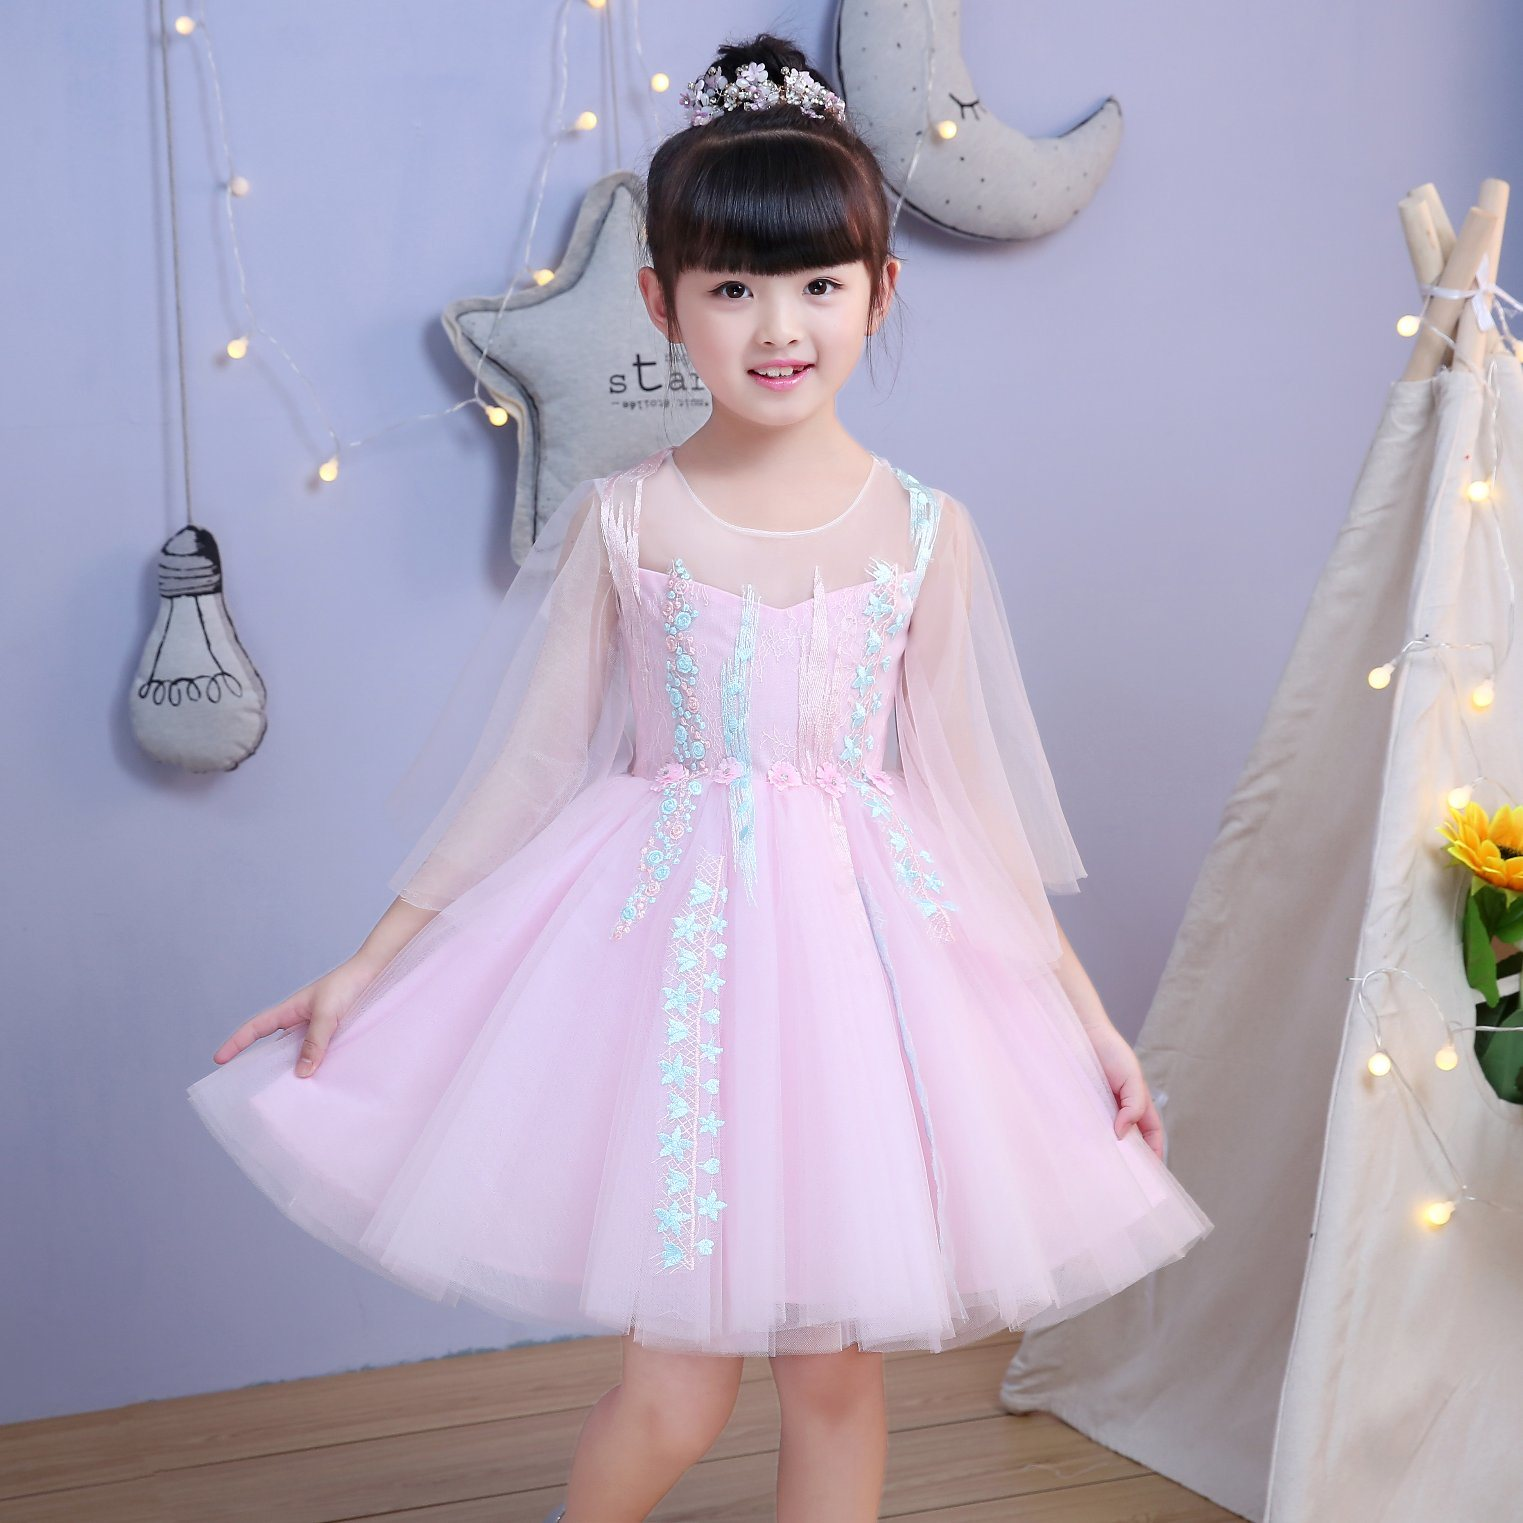 d1c56cca3 China Lovely Little Girl Dress Factory Photos   Pictures - Made-in ...